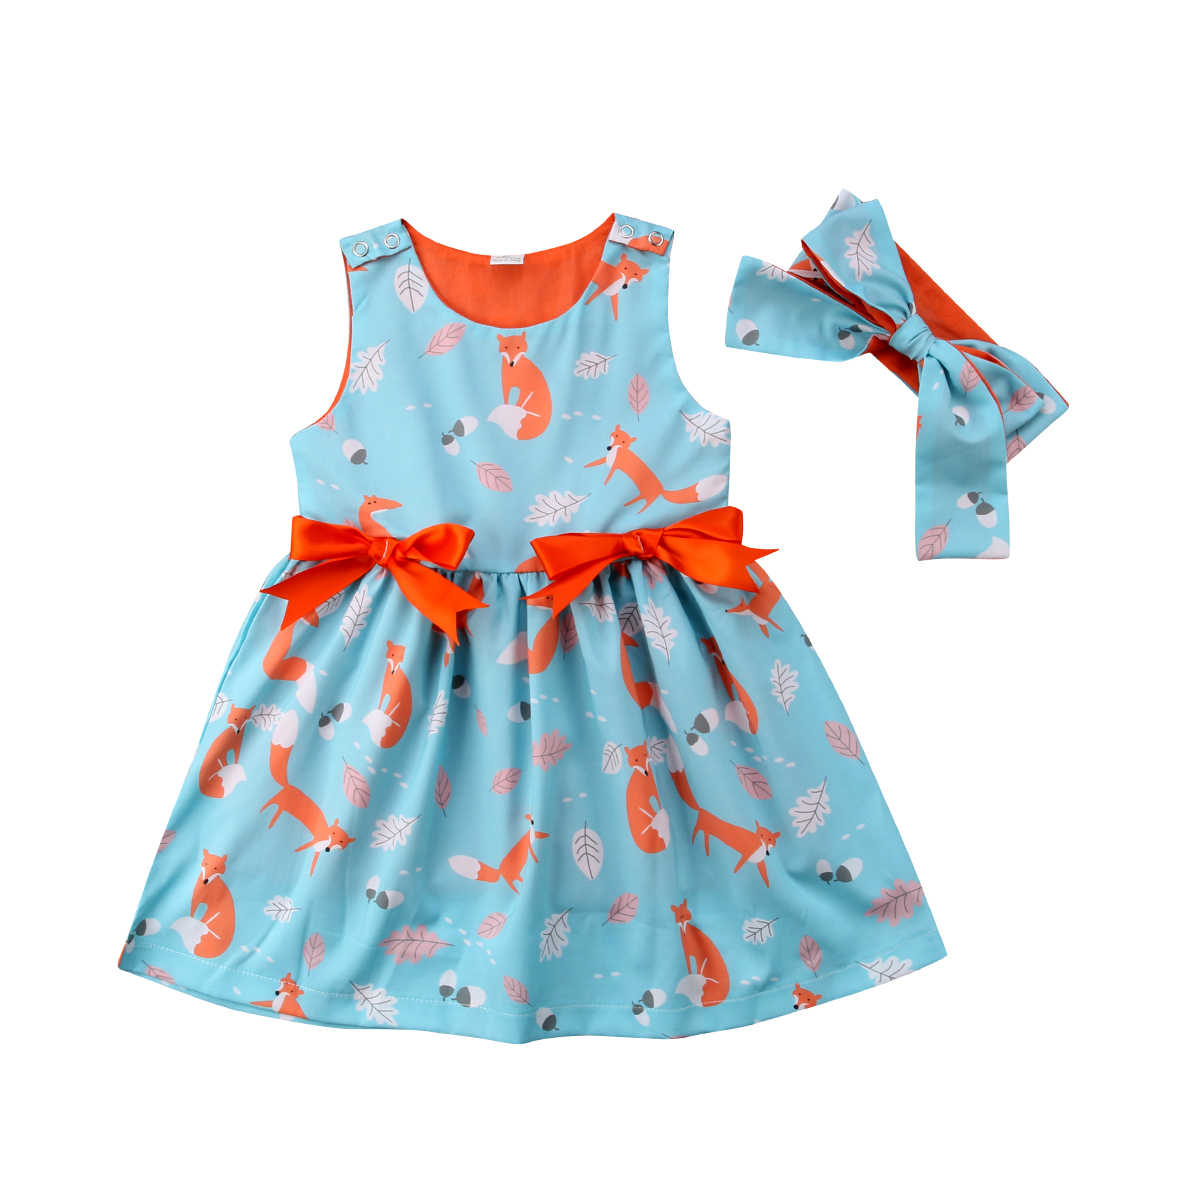 3c1764be5 Detail Feedback Questions about 2018 Kids Baby Girl Clothes Princess ...